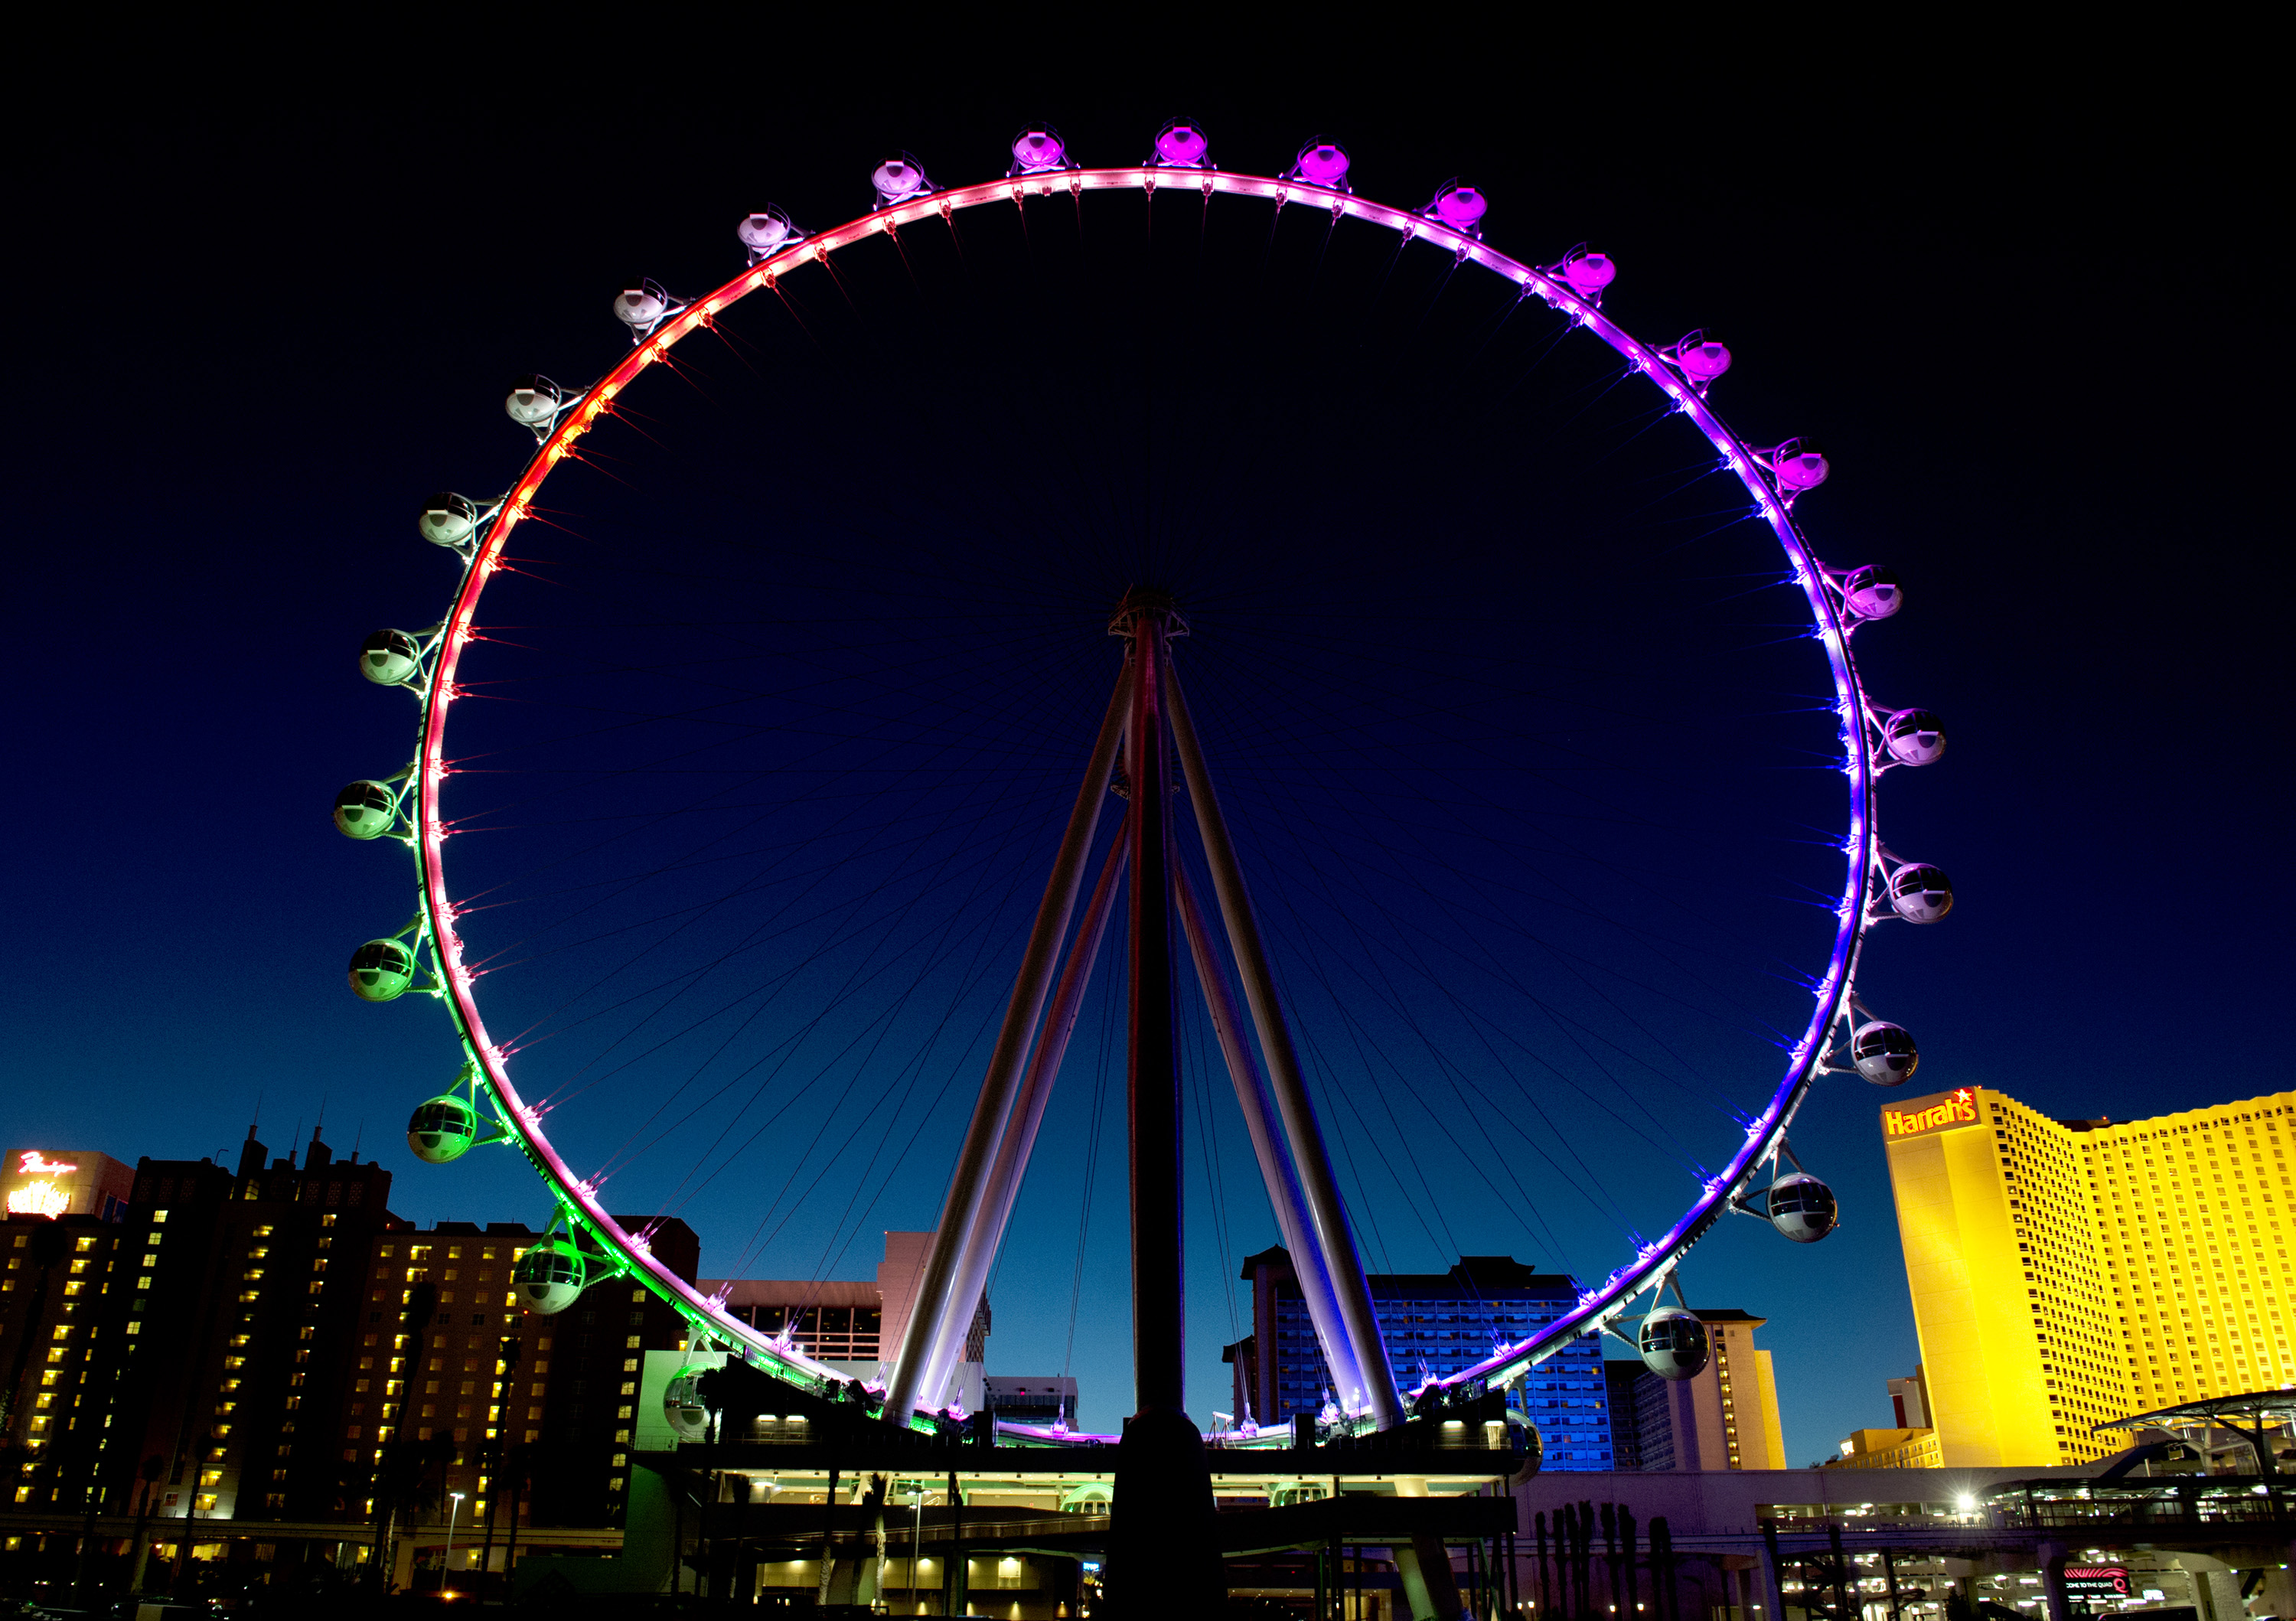 New Wheel Sky Las Vegas Ferris